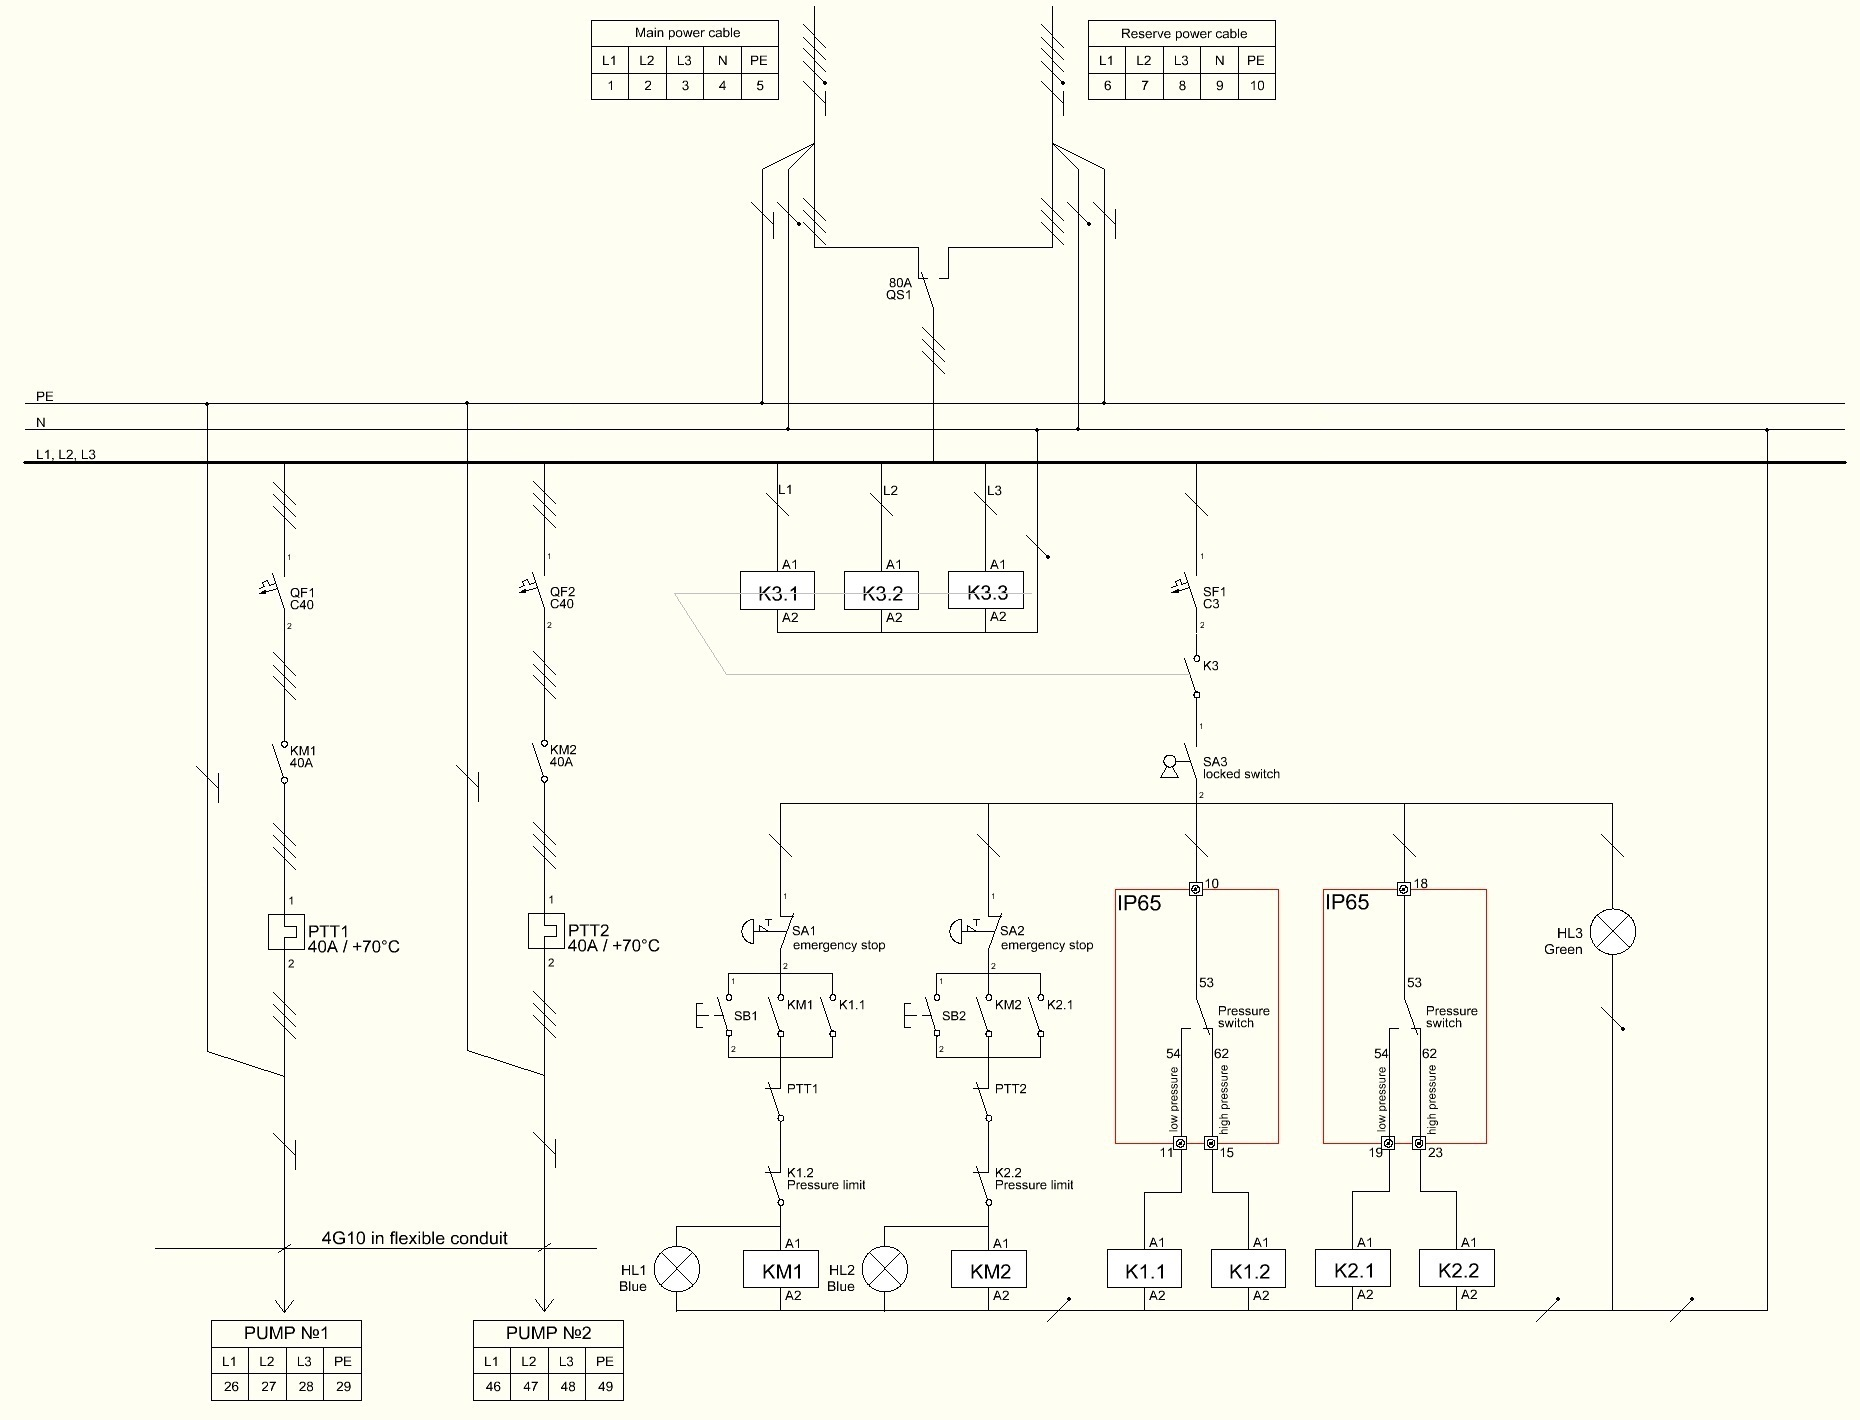 Filewiring Diagram Of Motor Control Centre On Pump Station Wiring Diagrams